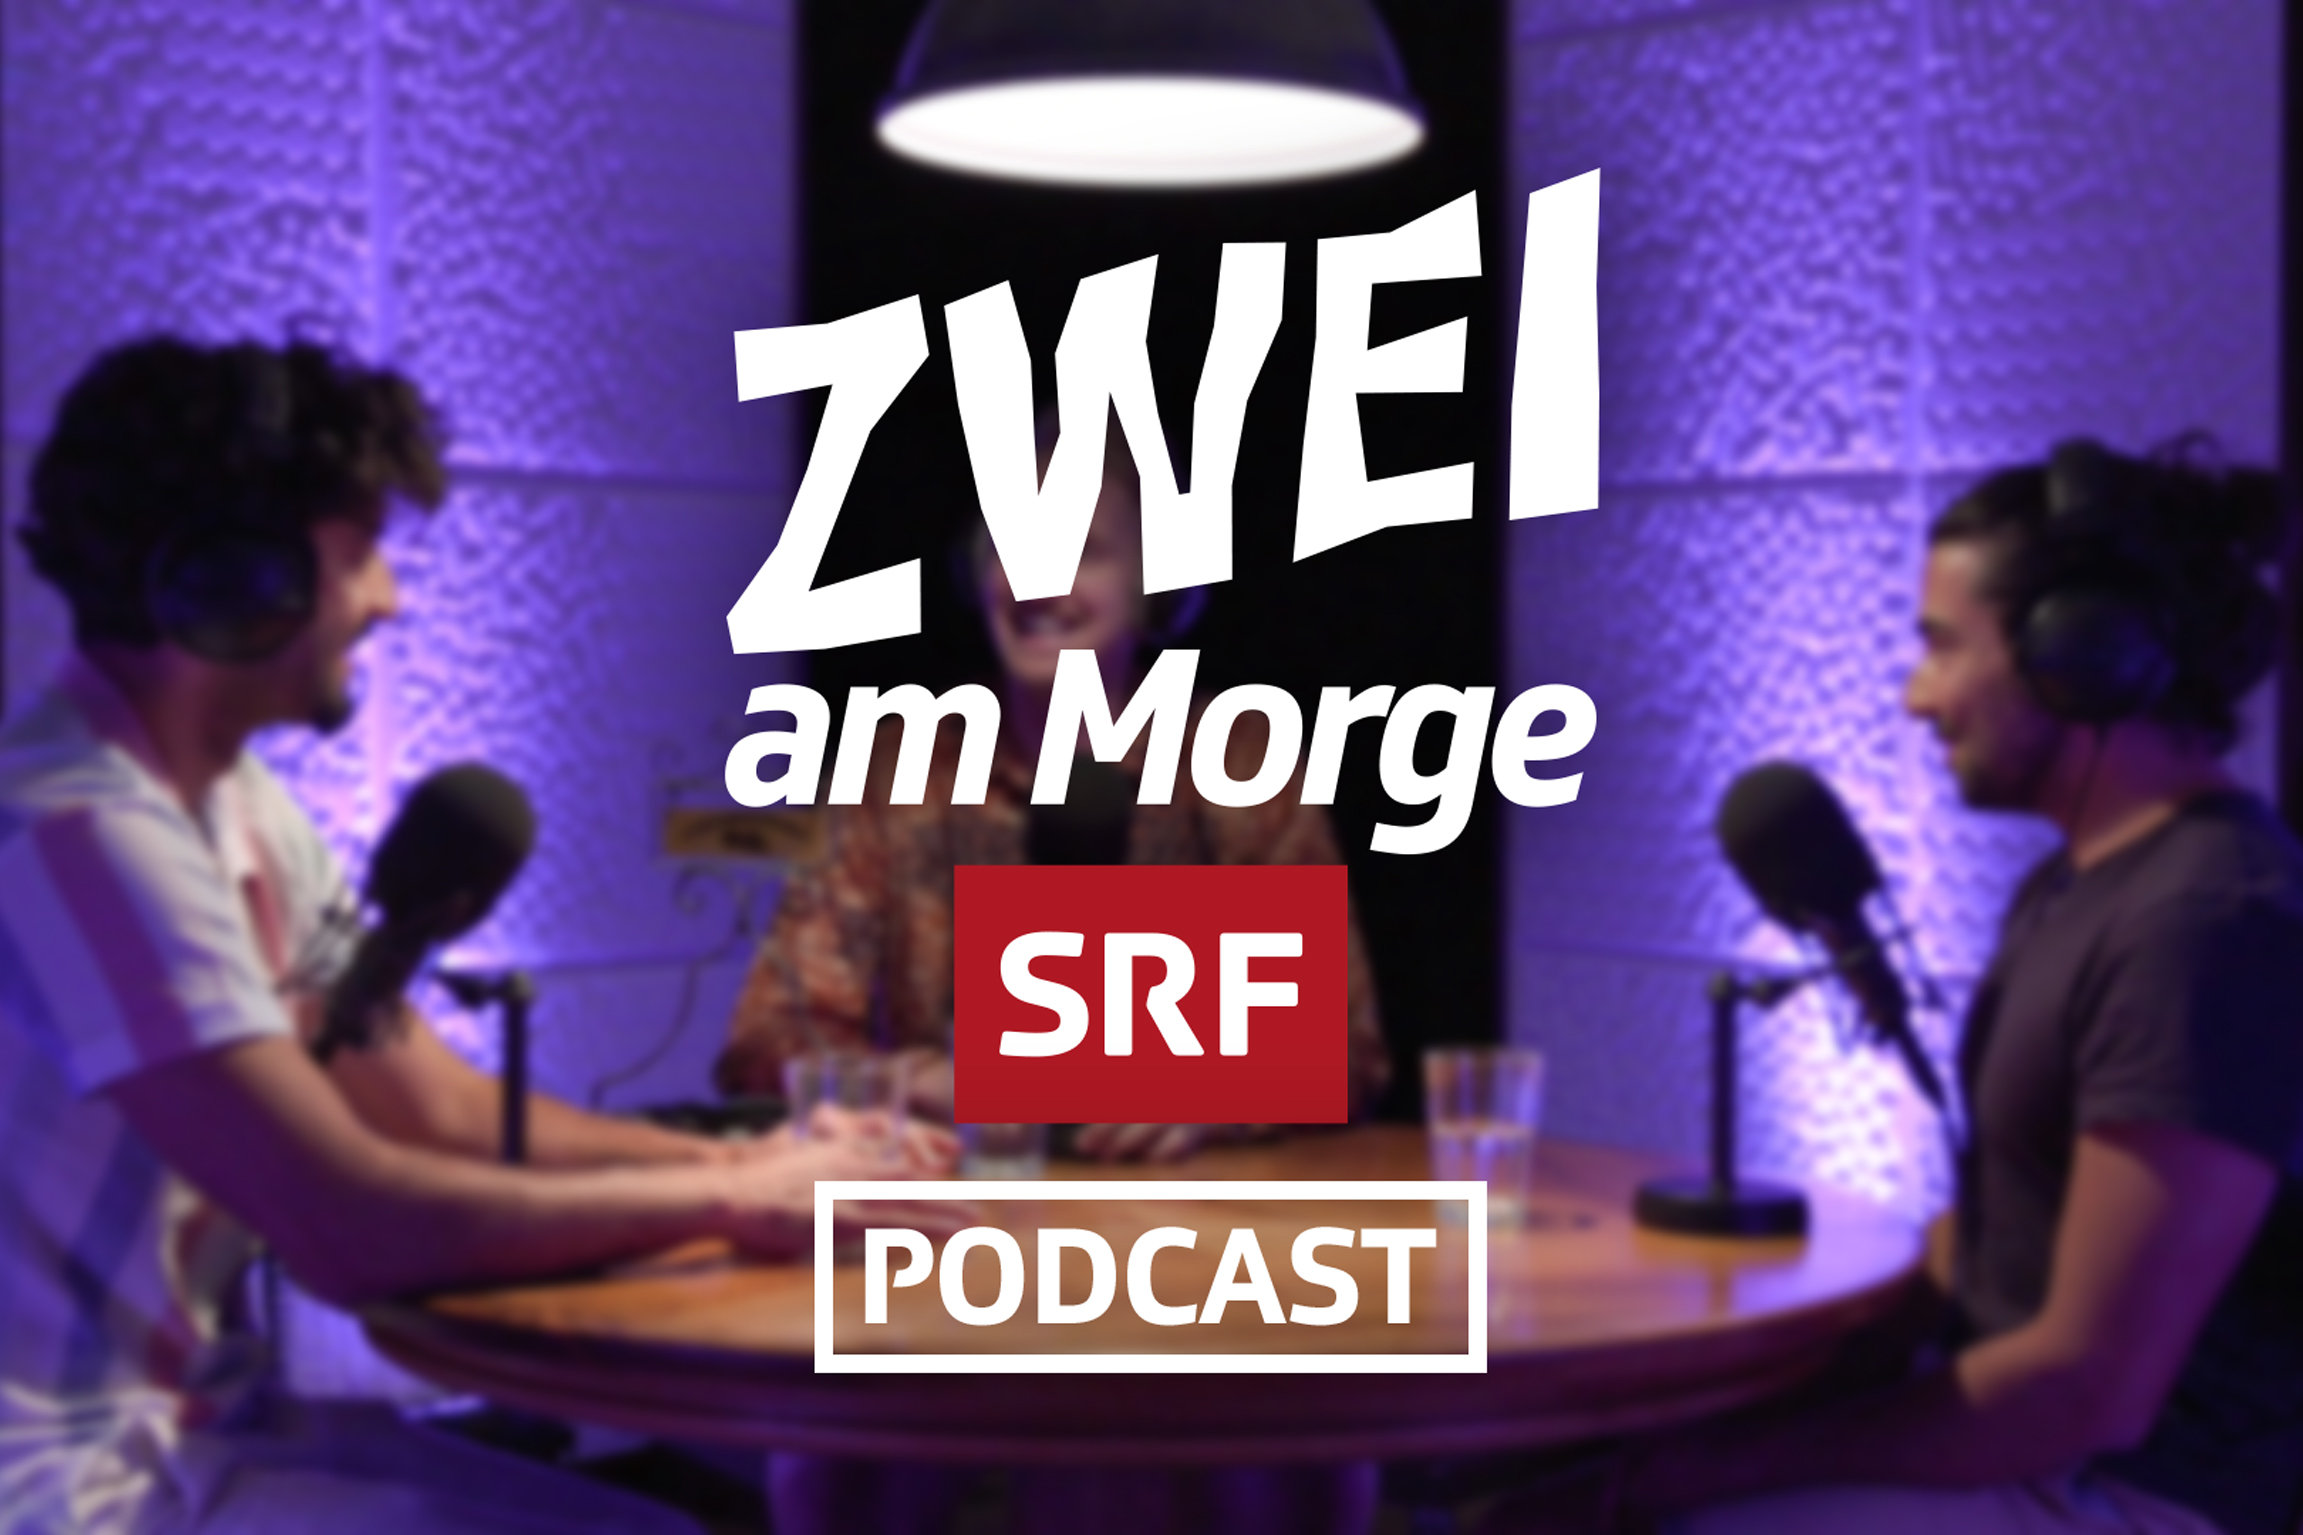 Zwei am Morge Podcast Keyvisual